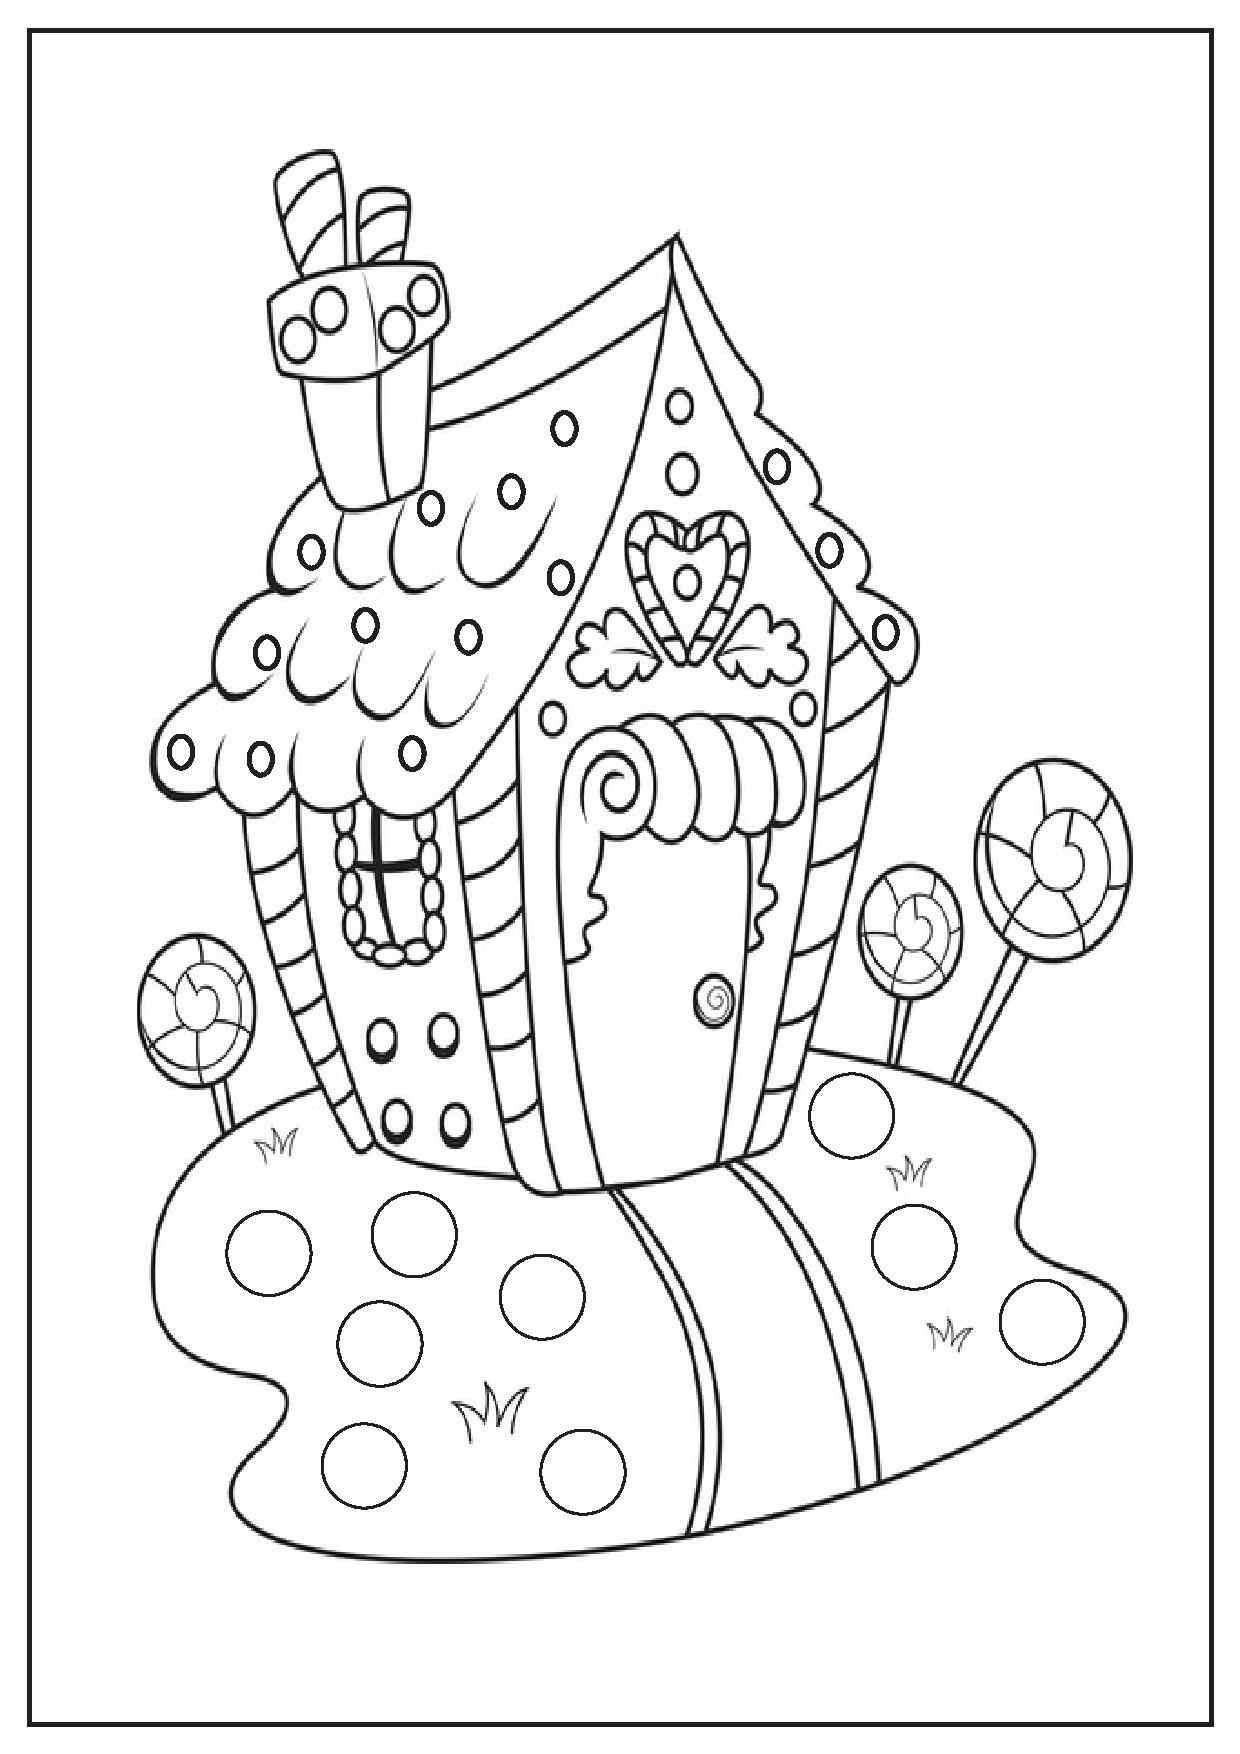 kindergarten coloring sheets Only Coloring Pages coloring